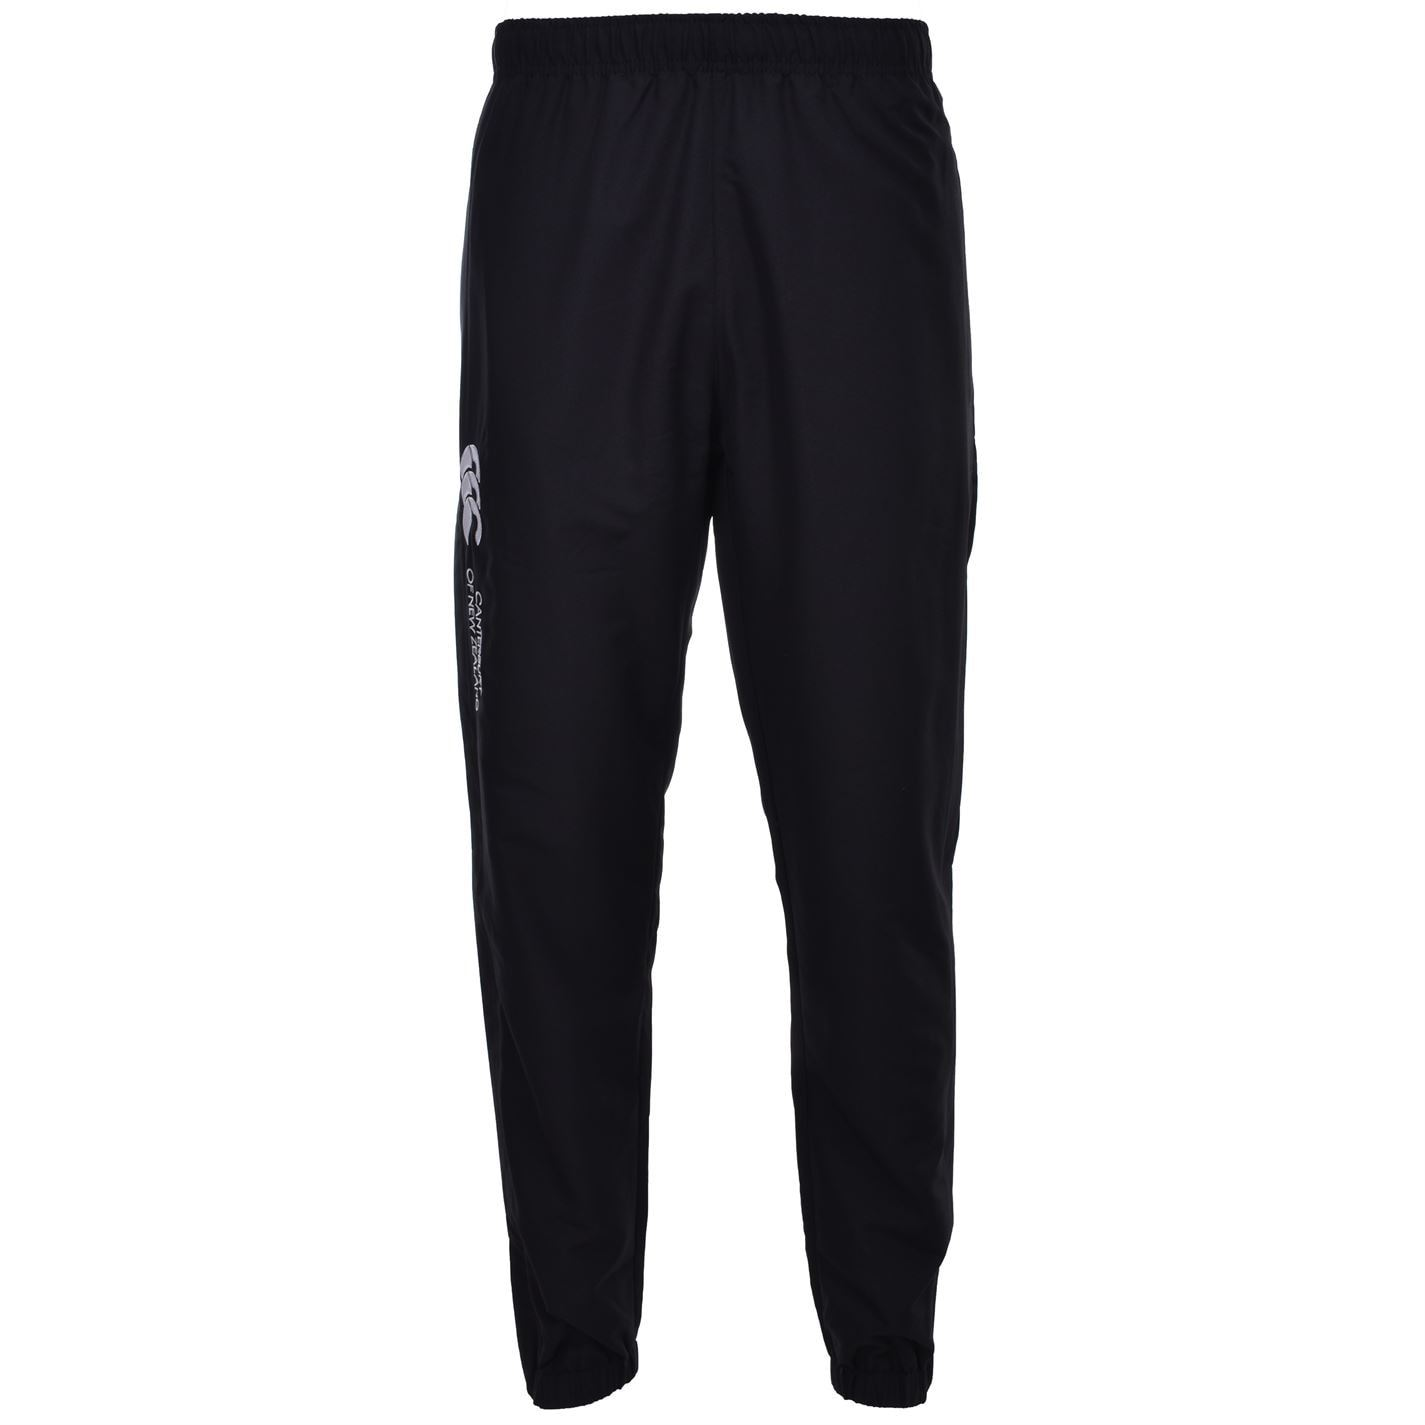 Canterbury-Cuffed-Stadium-Tracksuit-Pants-Mens-Rugby-Sweatpants-Fan-Bottoms thumbnail 3